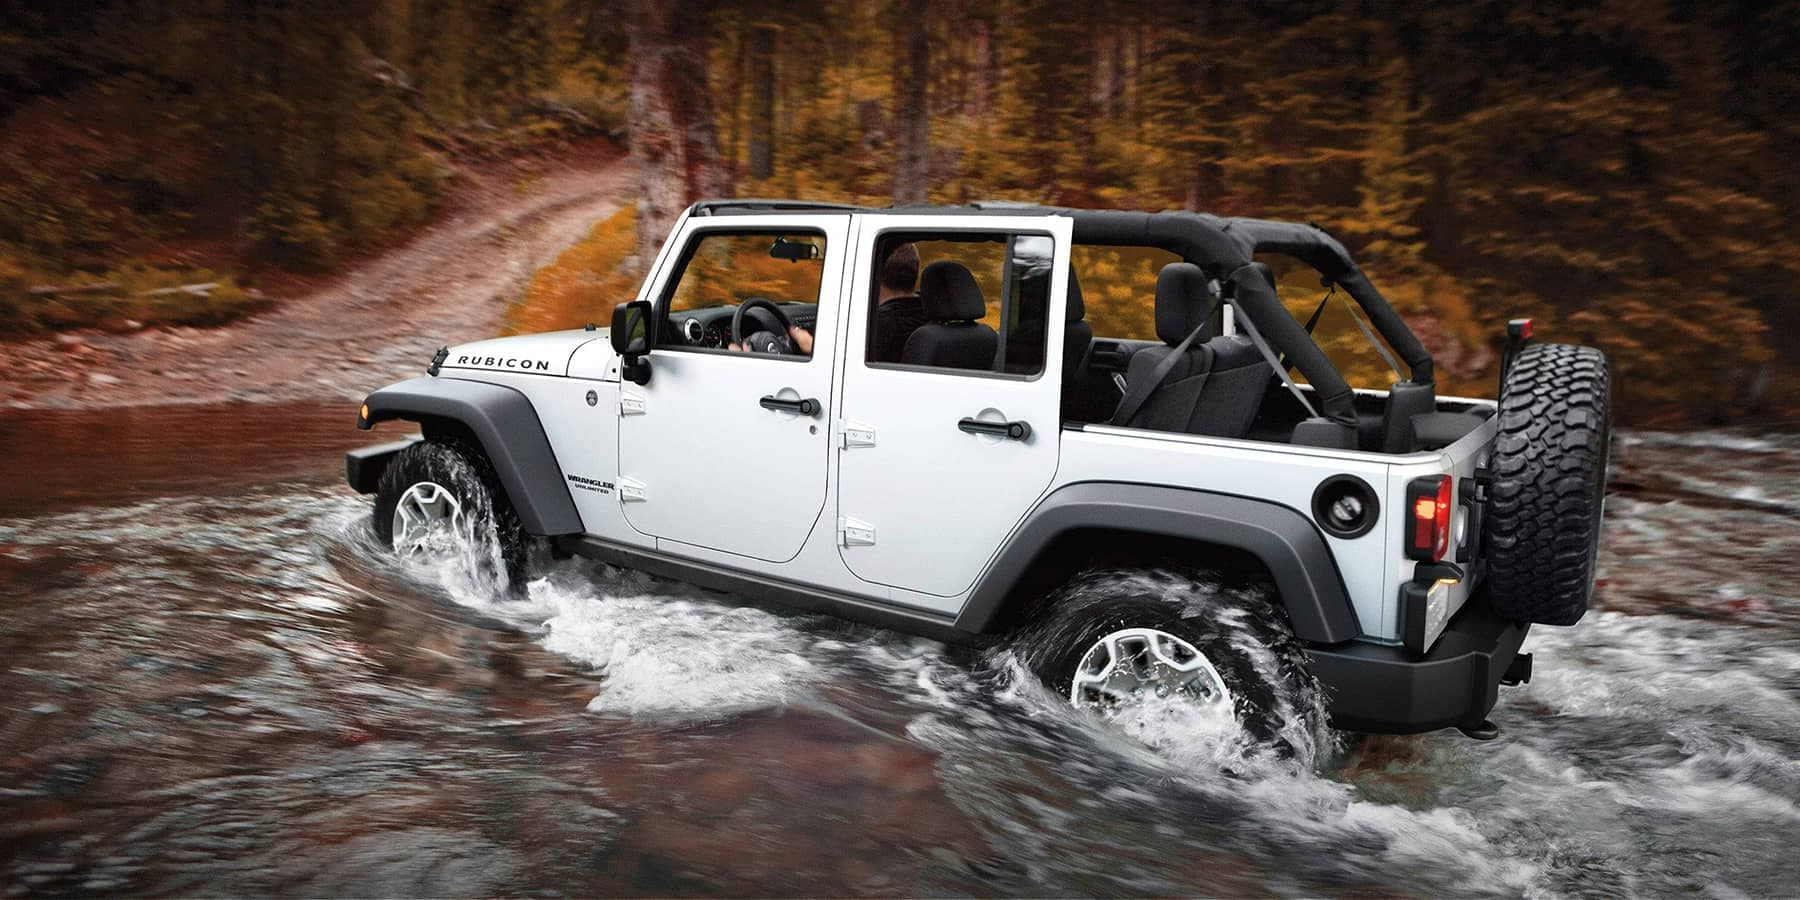 2017-Jeep-Wrangler-Unlimited-Gallery-Capability-Water.jpg.image.2880 (1)